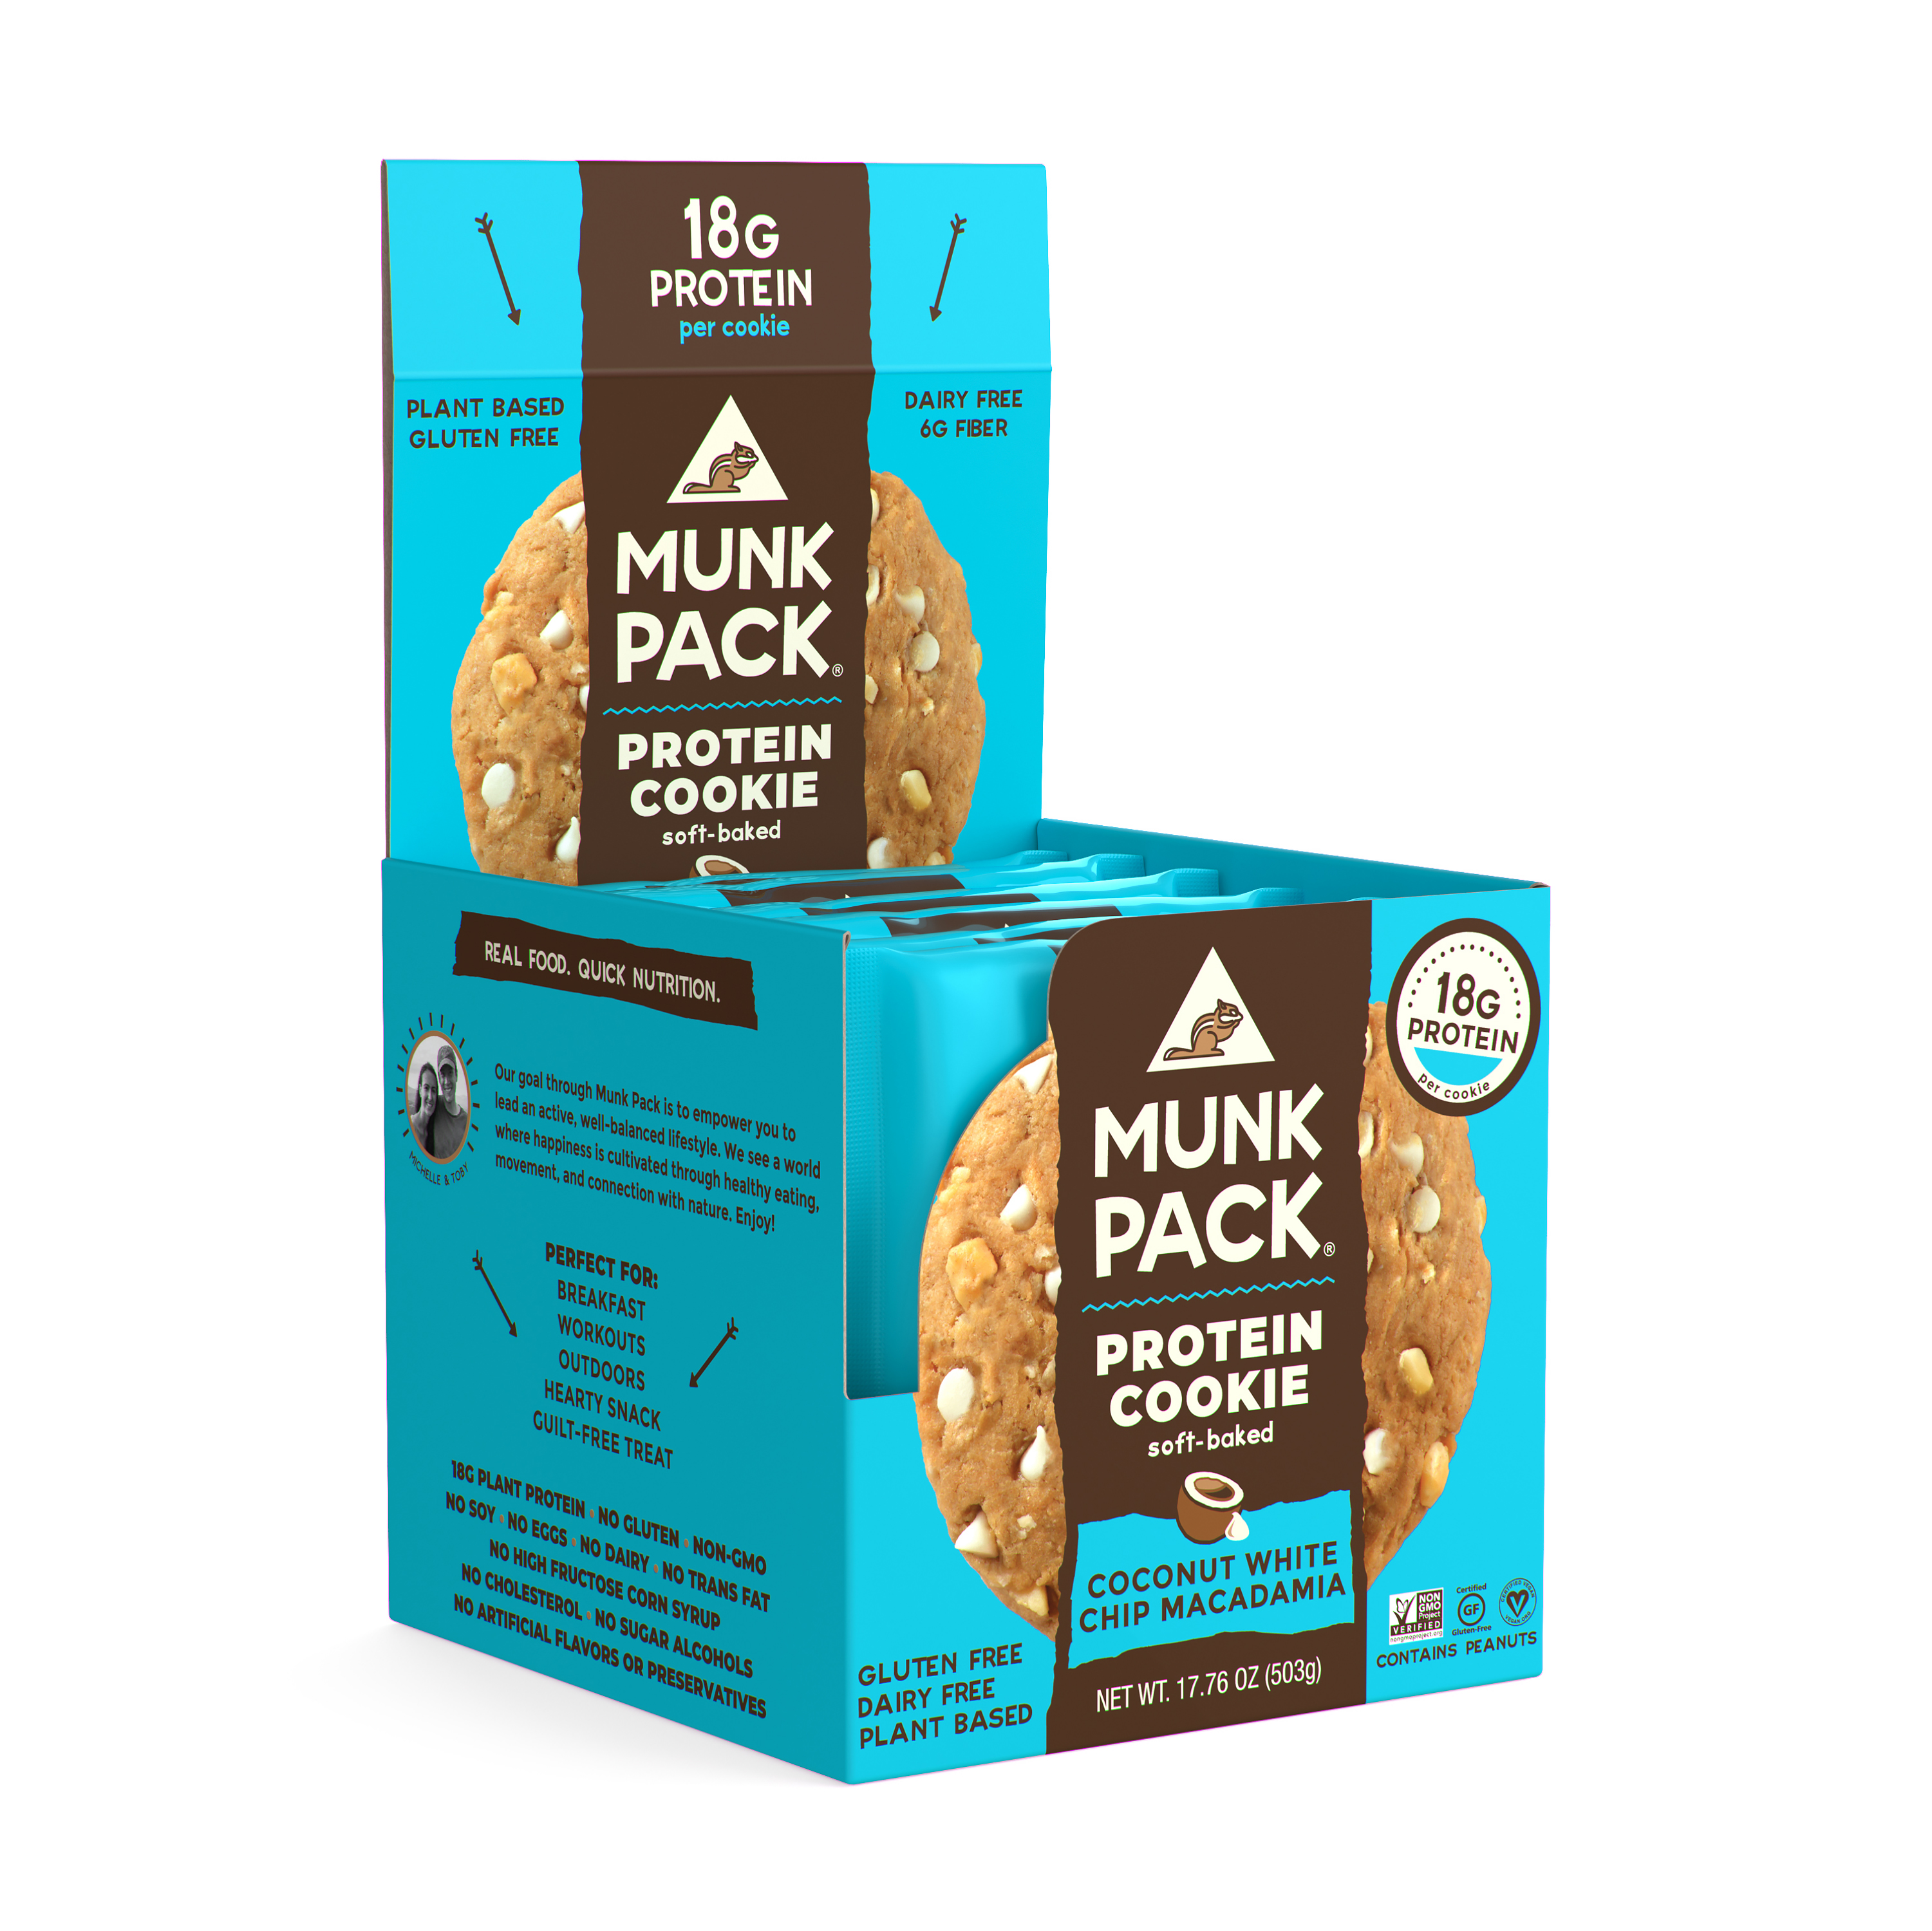 Munk Pack Protein Cookie, Coconut White Chocolate Macadamia, 2.96 Oz, 6 Ct